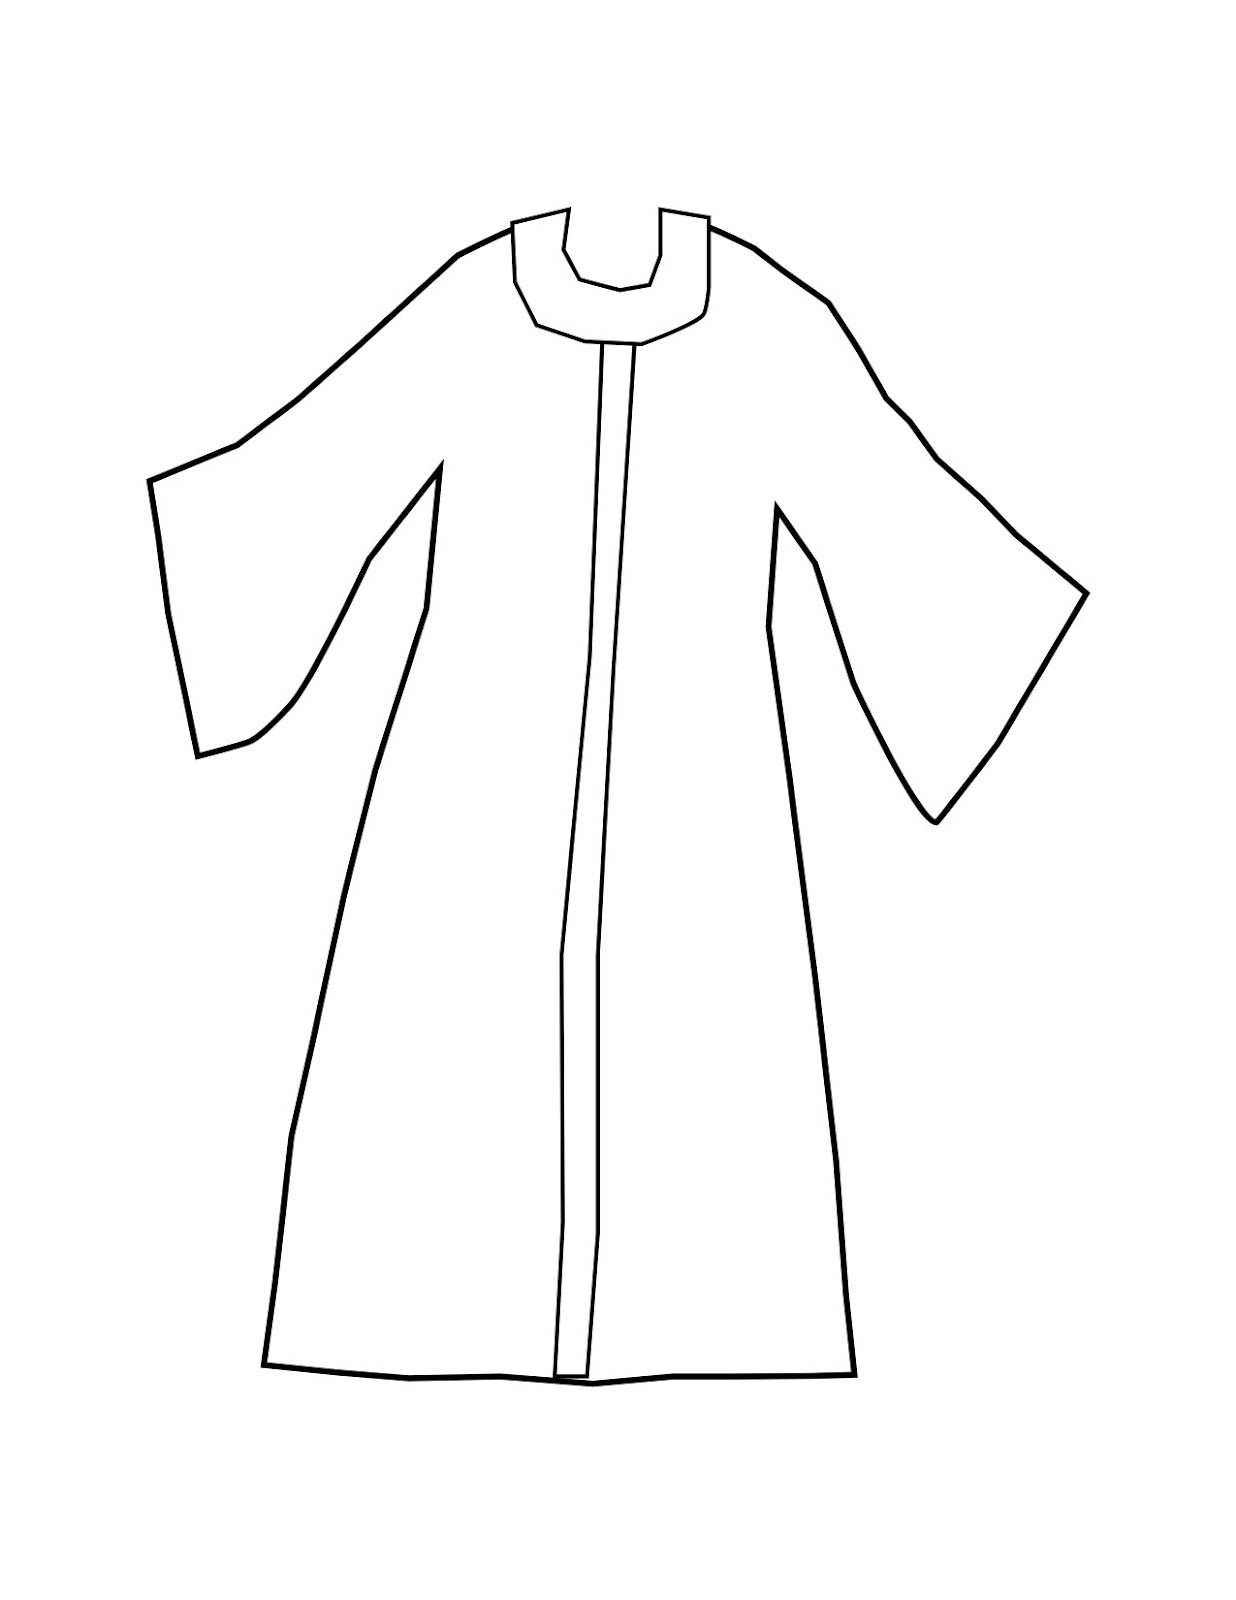 Blank Template Of A Coat To Wear Joseph